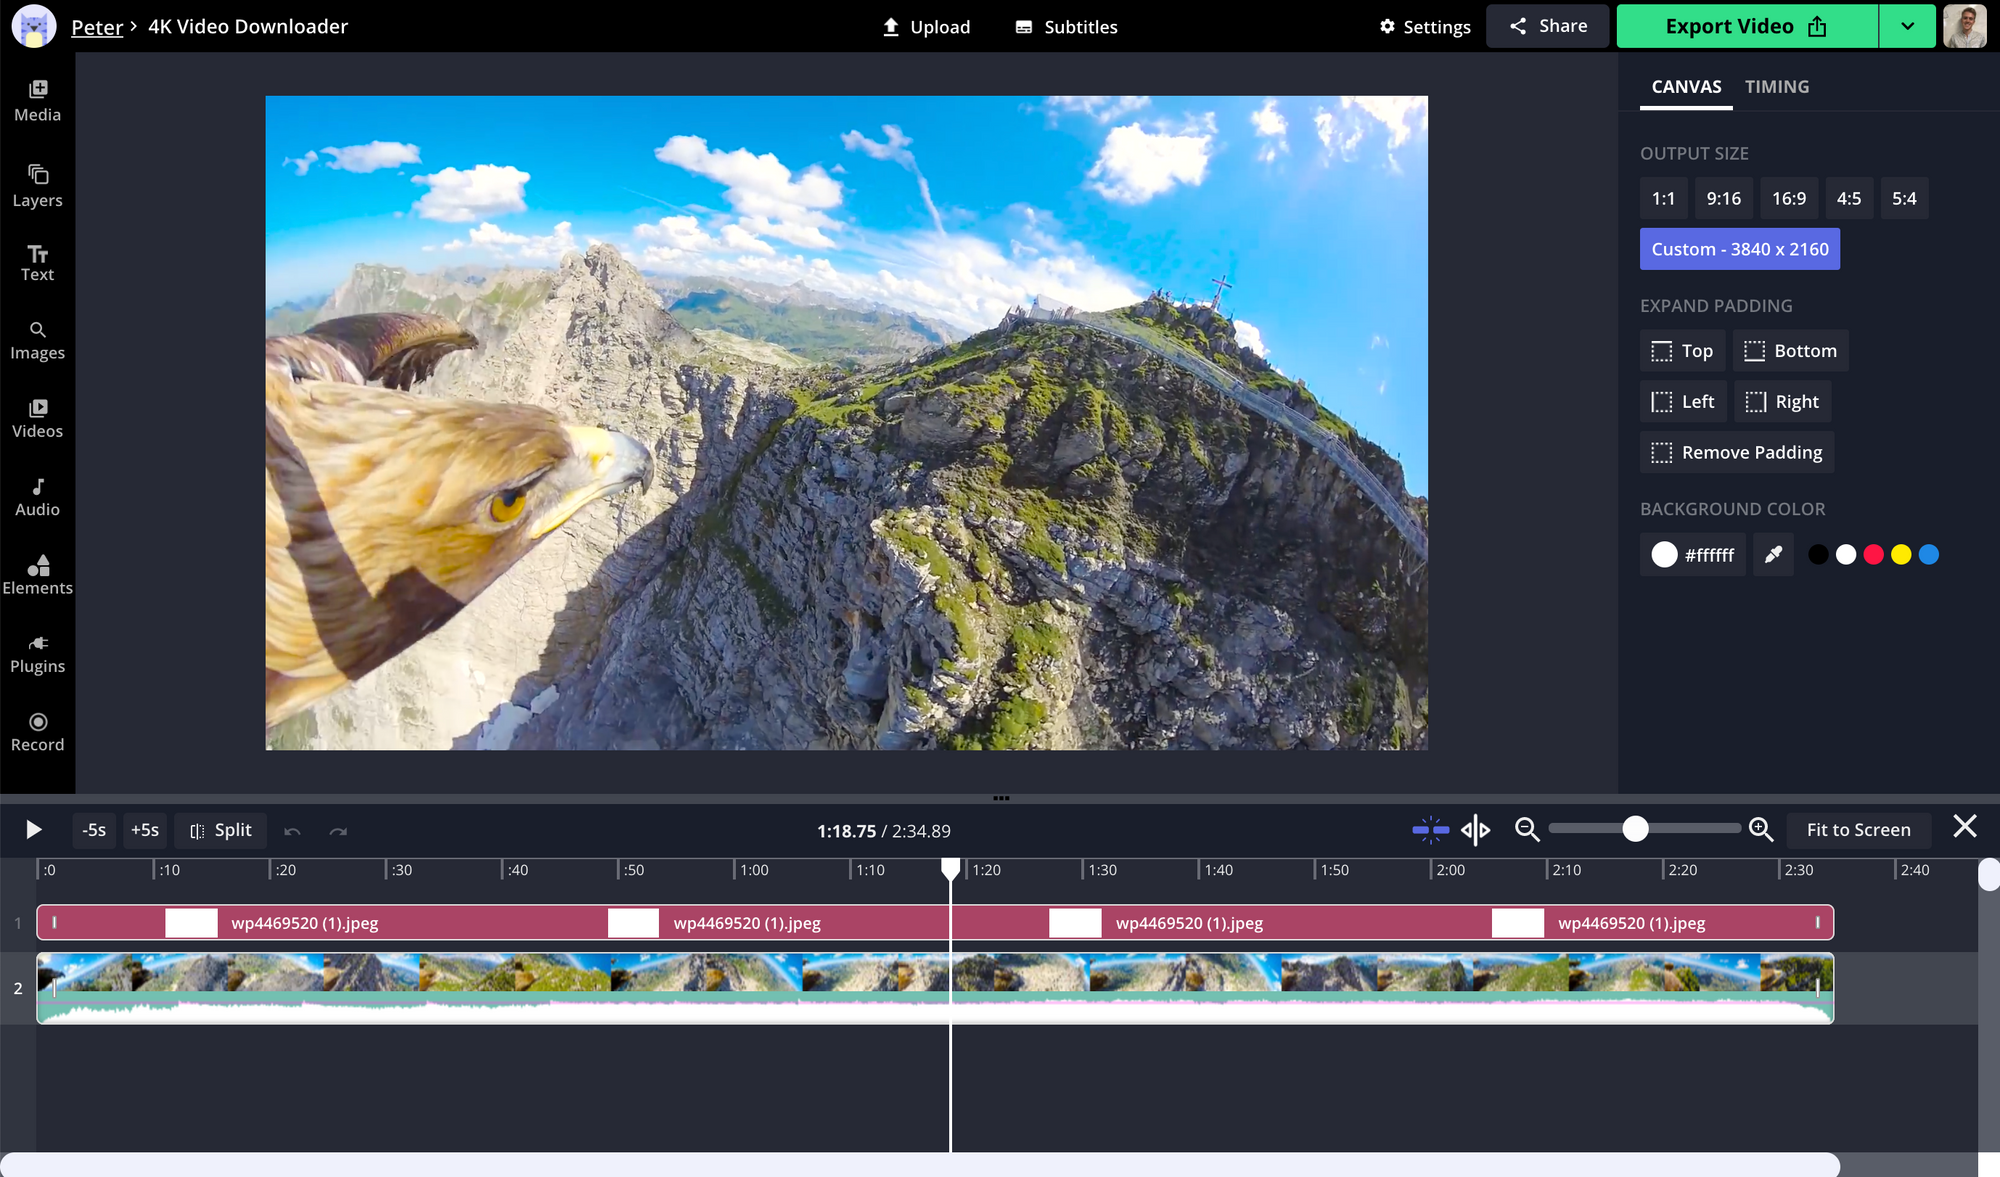 A screenshot of a 4K video being edited in the Kapwing Studio.